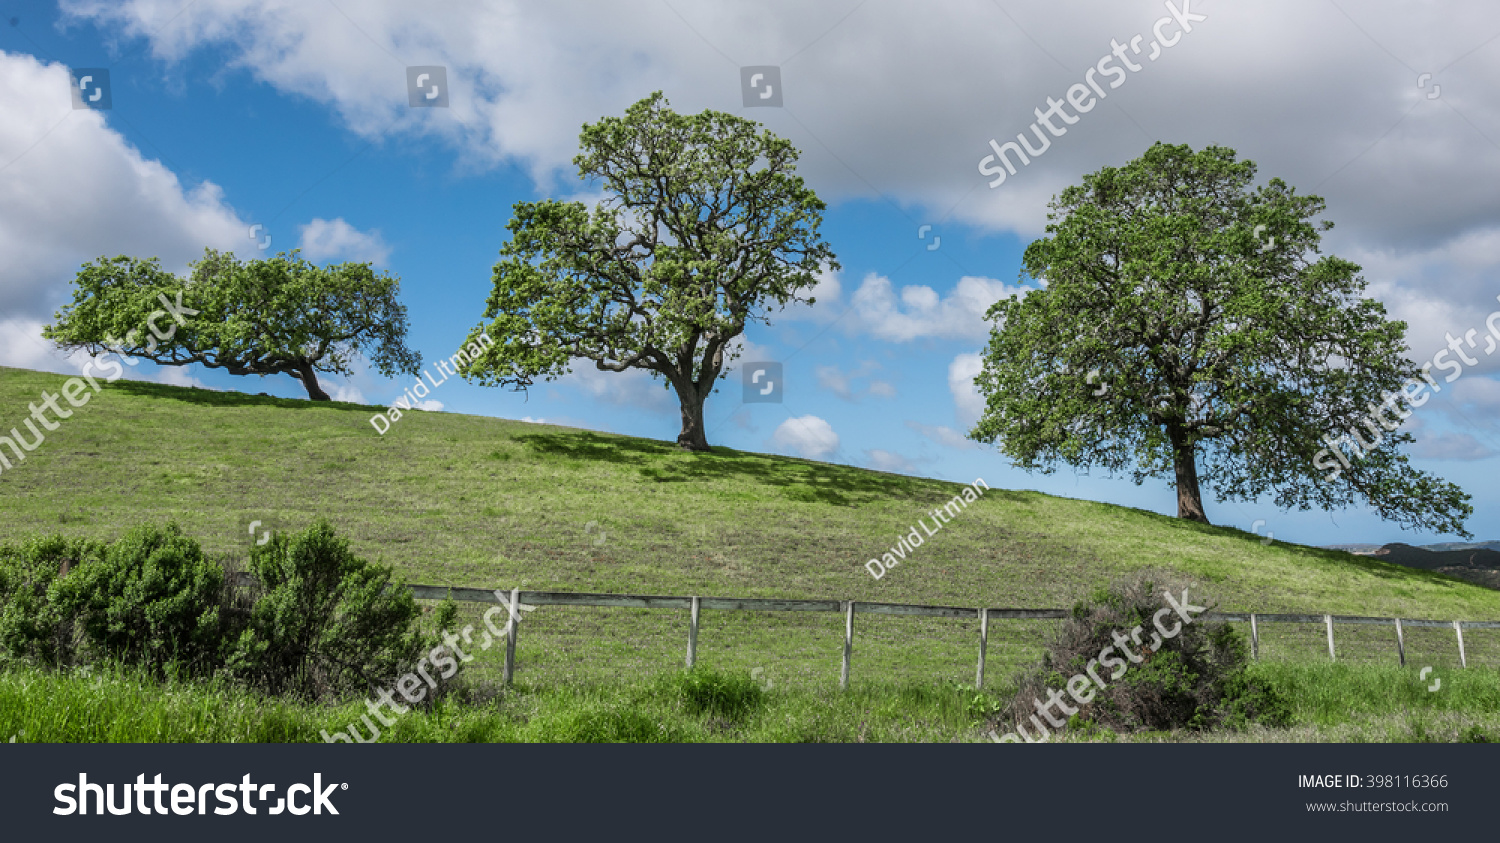 Three coastal live oak trees (Quercus agrifolia) on a grassy hilltop with clouds and blue sky in the hills of Monterey, California, USA